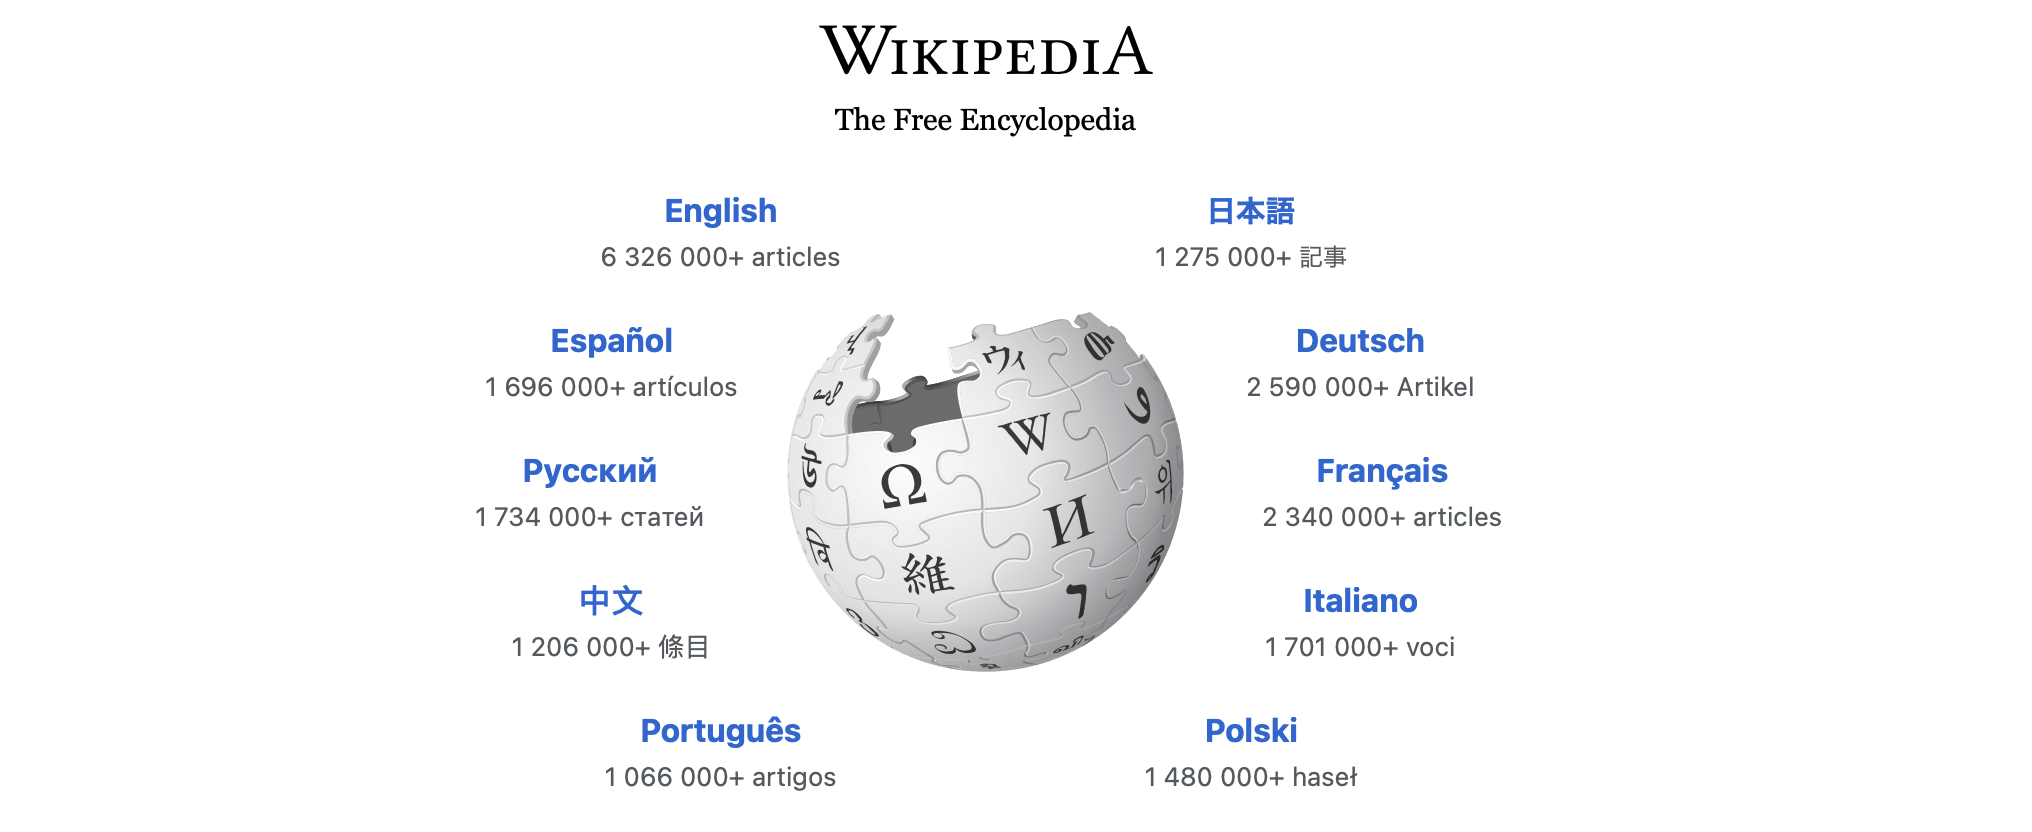 Screenshot of the Wikipedia home page, displaying the site logo above a world globe made out of puzzle pieces. Links to various languages float around the globe's edge, like English, Spanish, German, in blue. Each link has a light grey count of how many articles are available in each language.